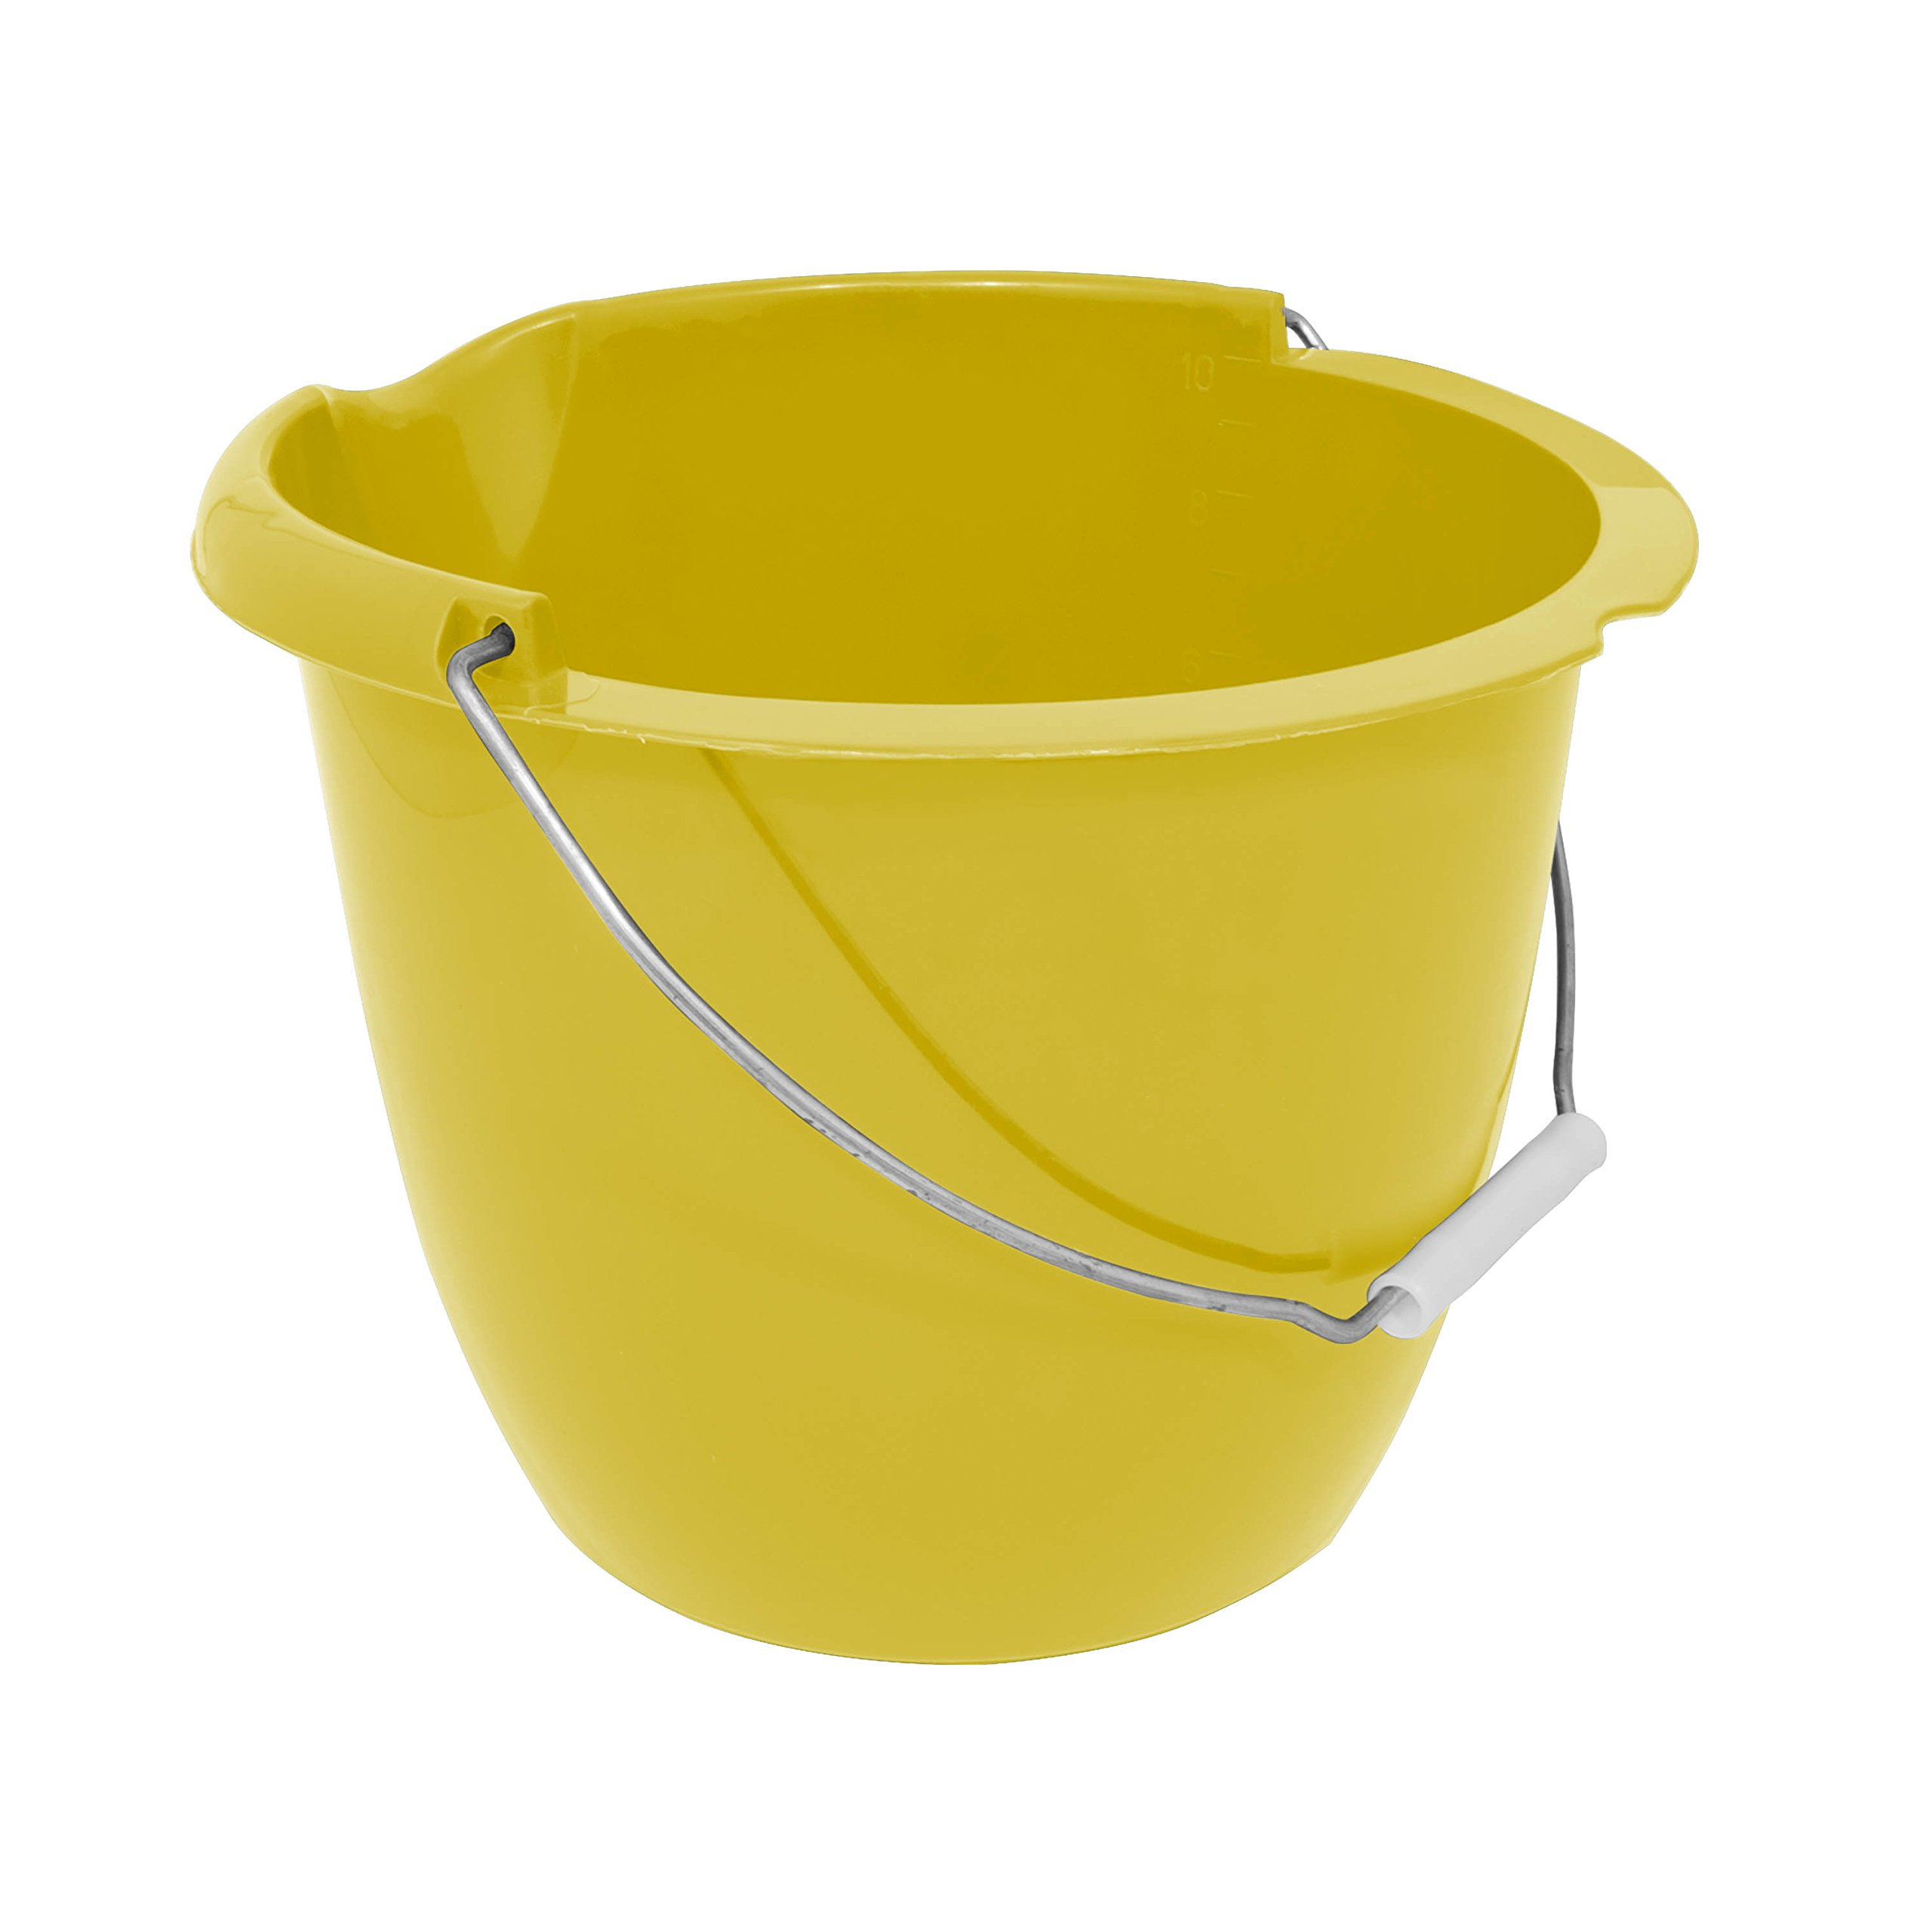 Charles Bentley Plastic Bucket with Pouring Lip 10 Litre Capacity Yellow